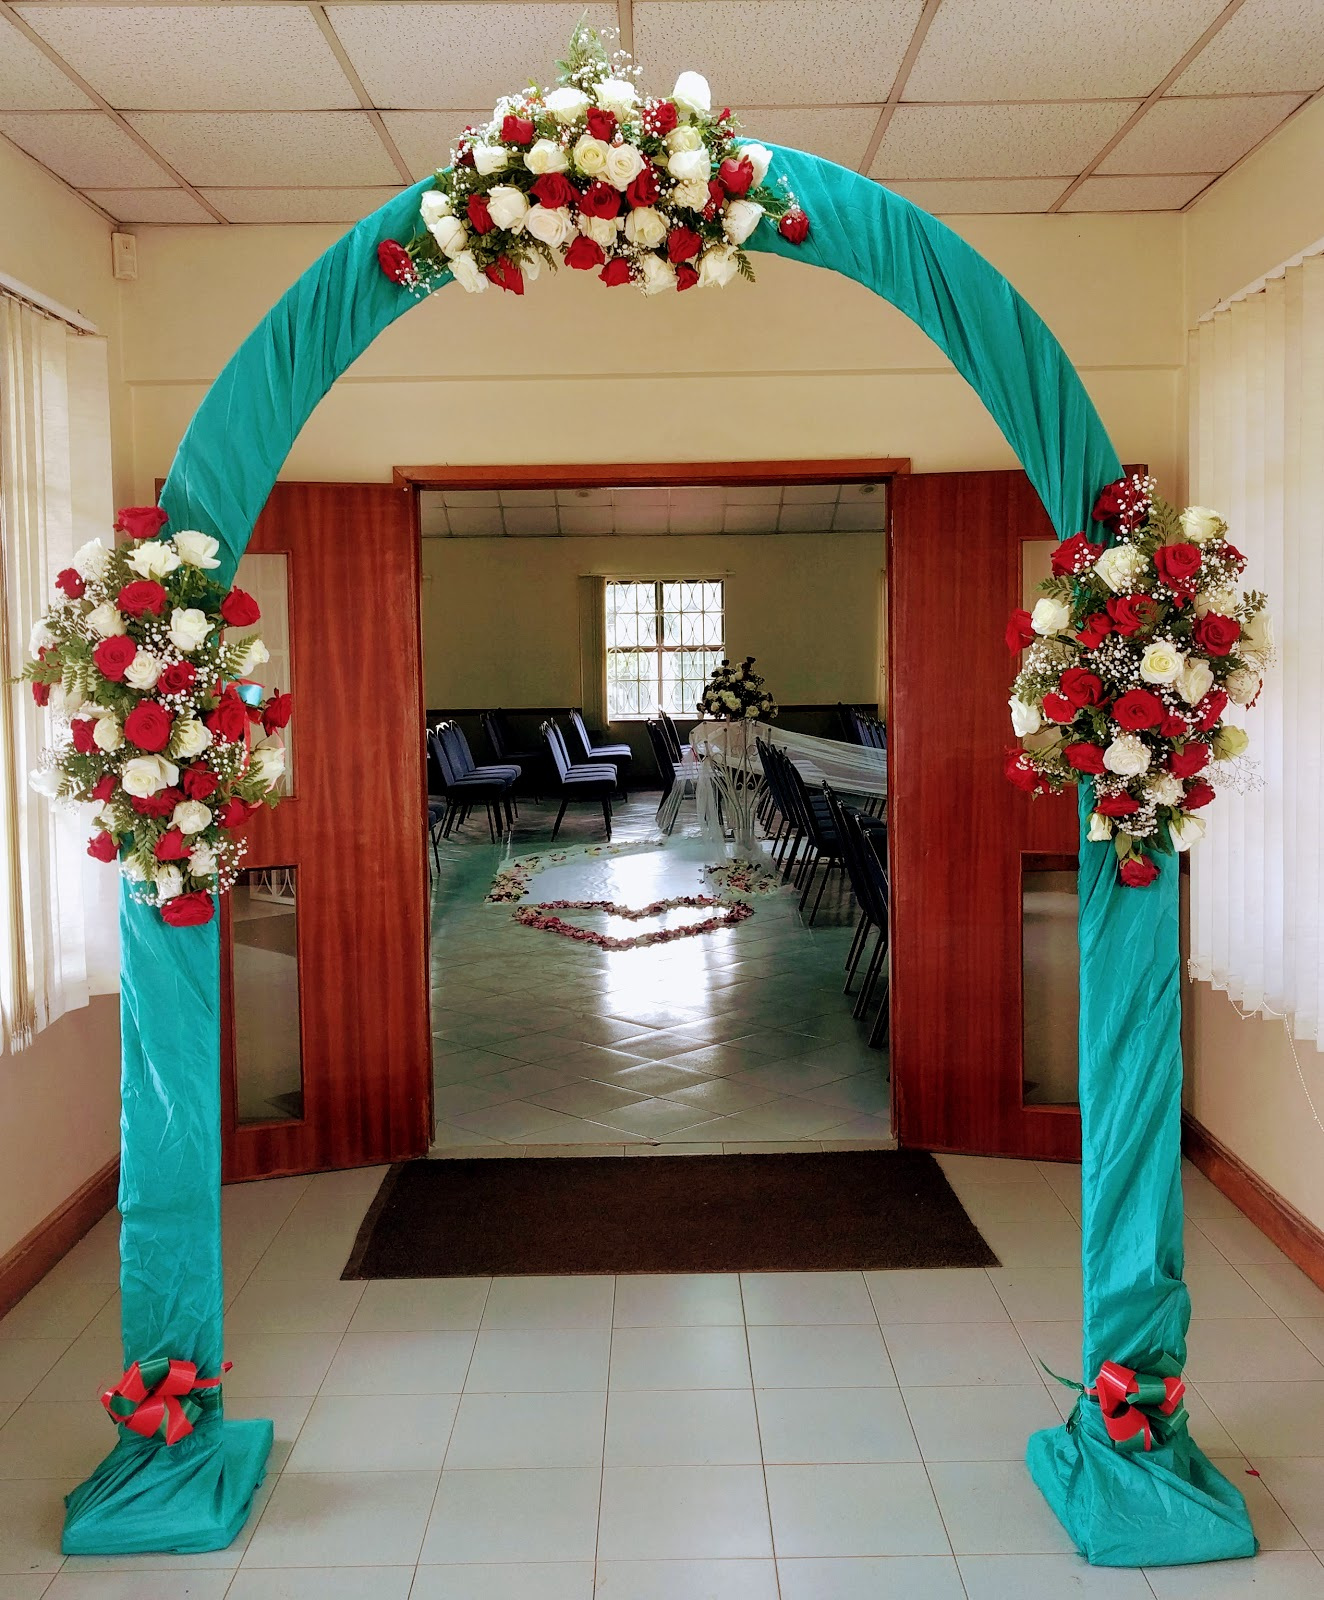 Nm a beautiful kenyan wedding one thing i realized probably features largely in kenyan weddings are these fabulous large flower arrangements it makes sense as many of the flowers junglespirit Choice Image